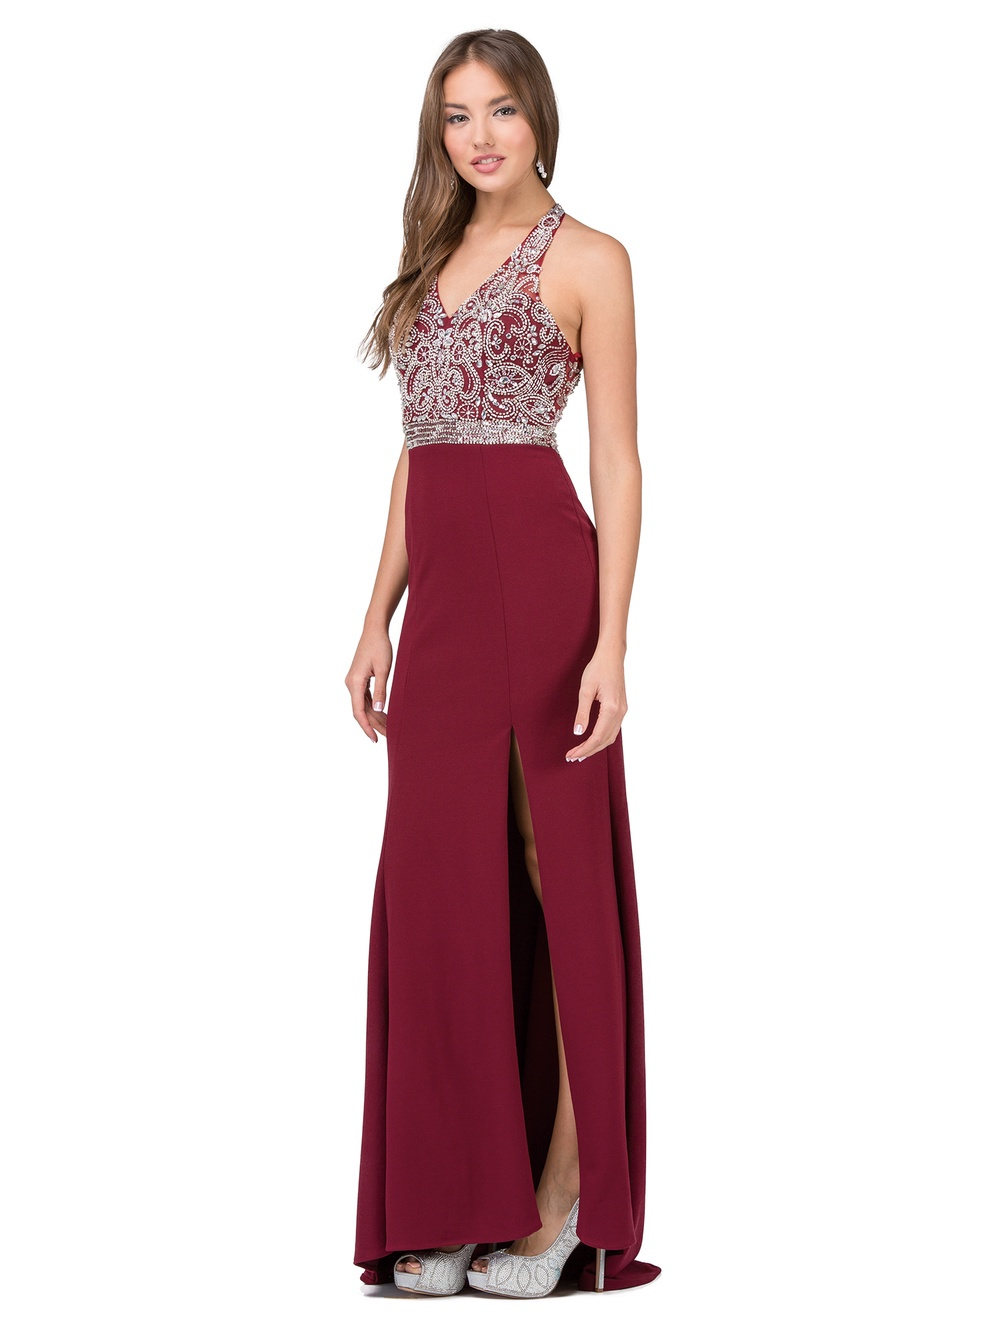 Burgundy Beaded Halter Top With Jersey Skirt With Slit Prom Dress ...